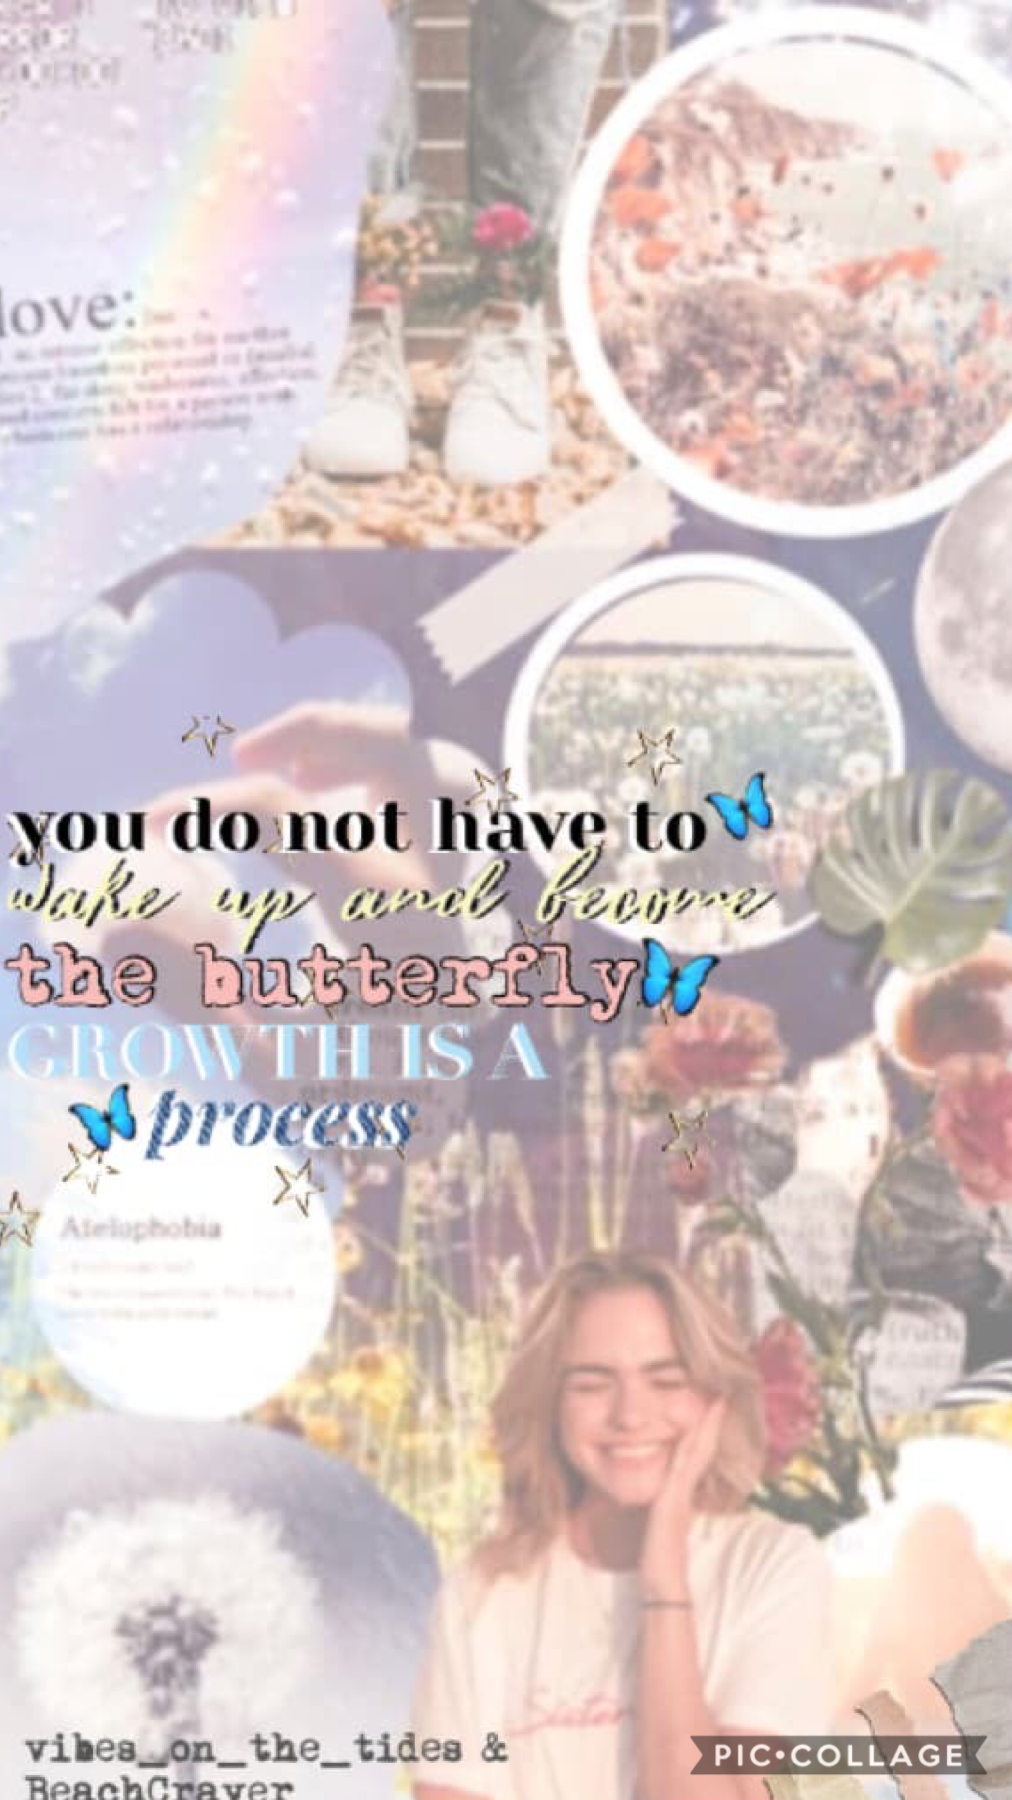 🥁collab with🥁  BeachCraver!!! she is so sweet and made the beautiful background and I did the text!  go give her a follow if you haven't already 💗💗💗